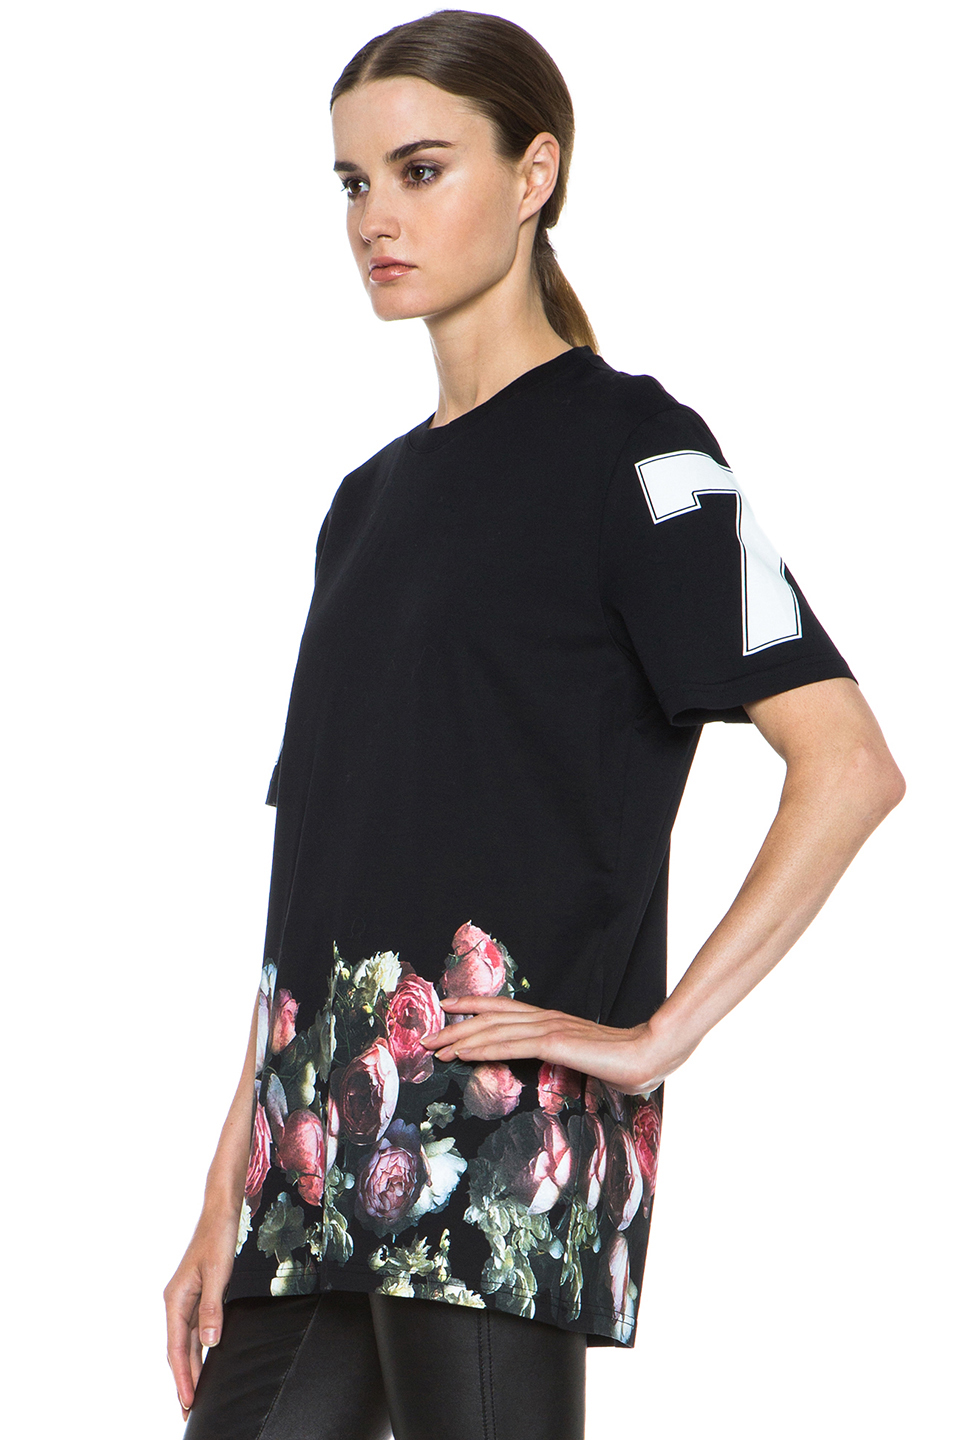 GIVENCHY|Flower Border Tee in Black